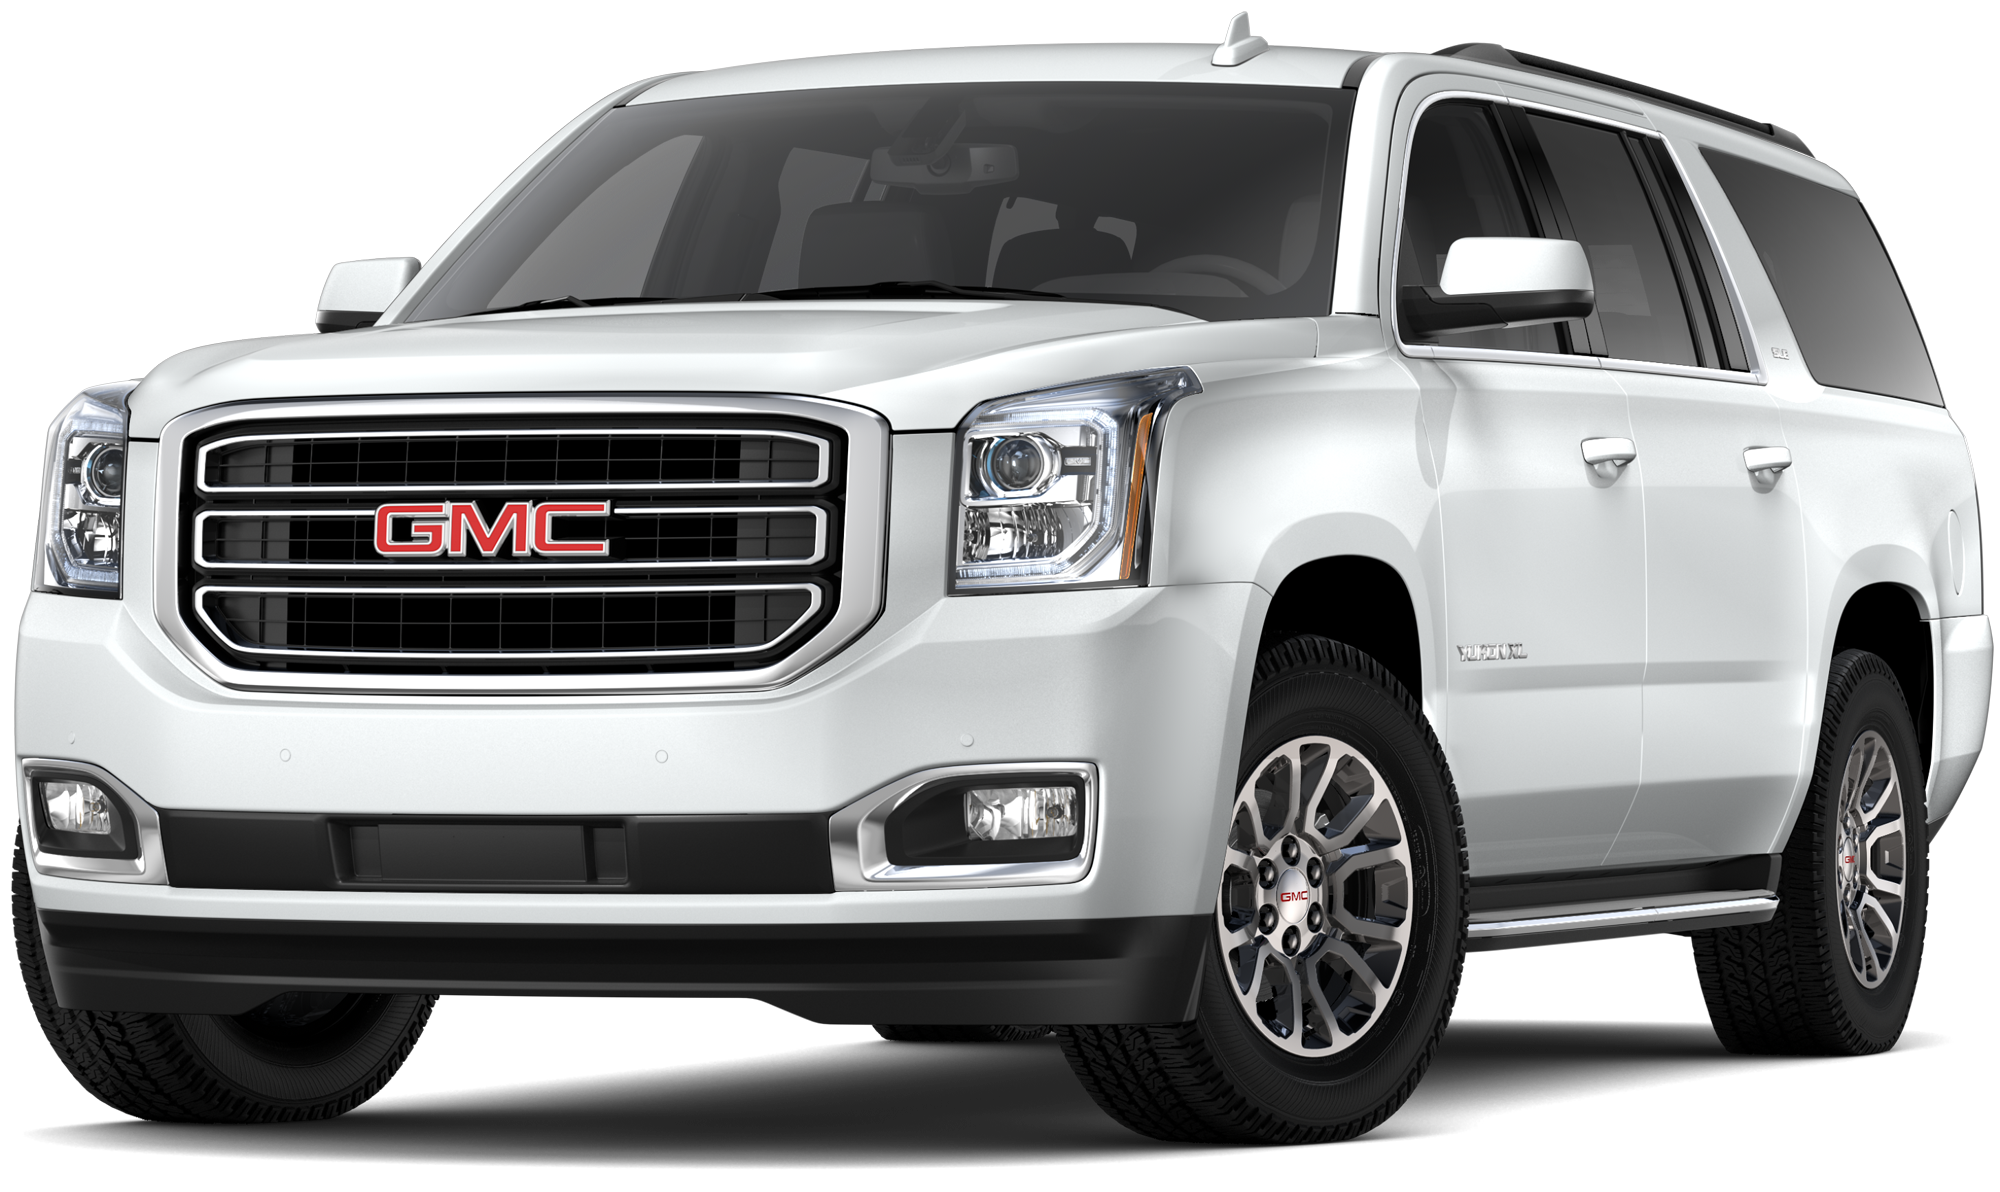 2020 Gmc Yukon Xl Incentives Specials Offers In Muncy Pa